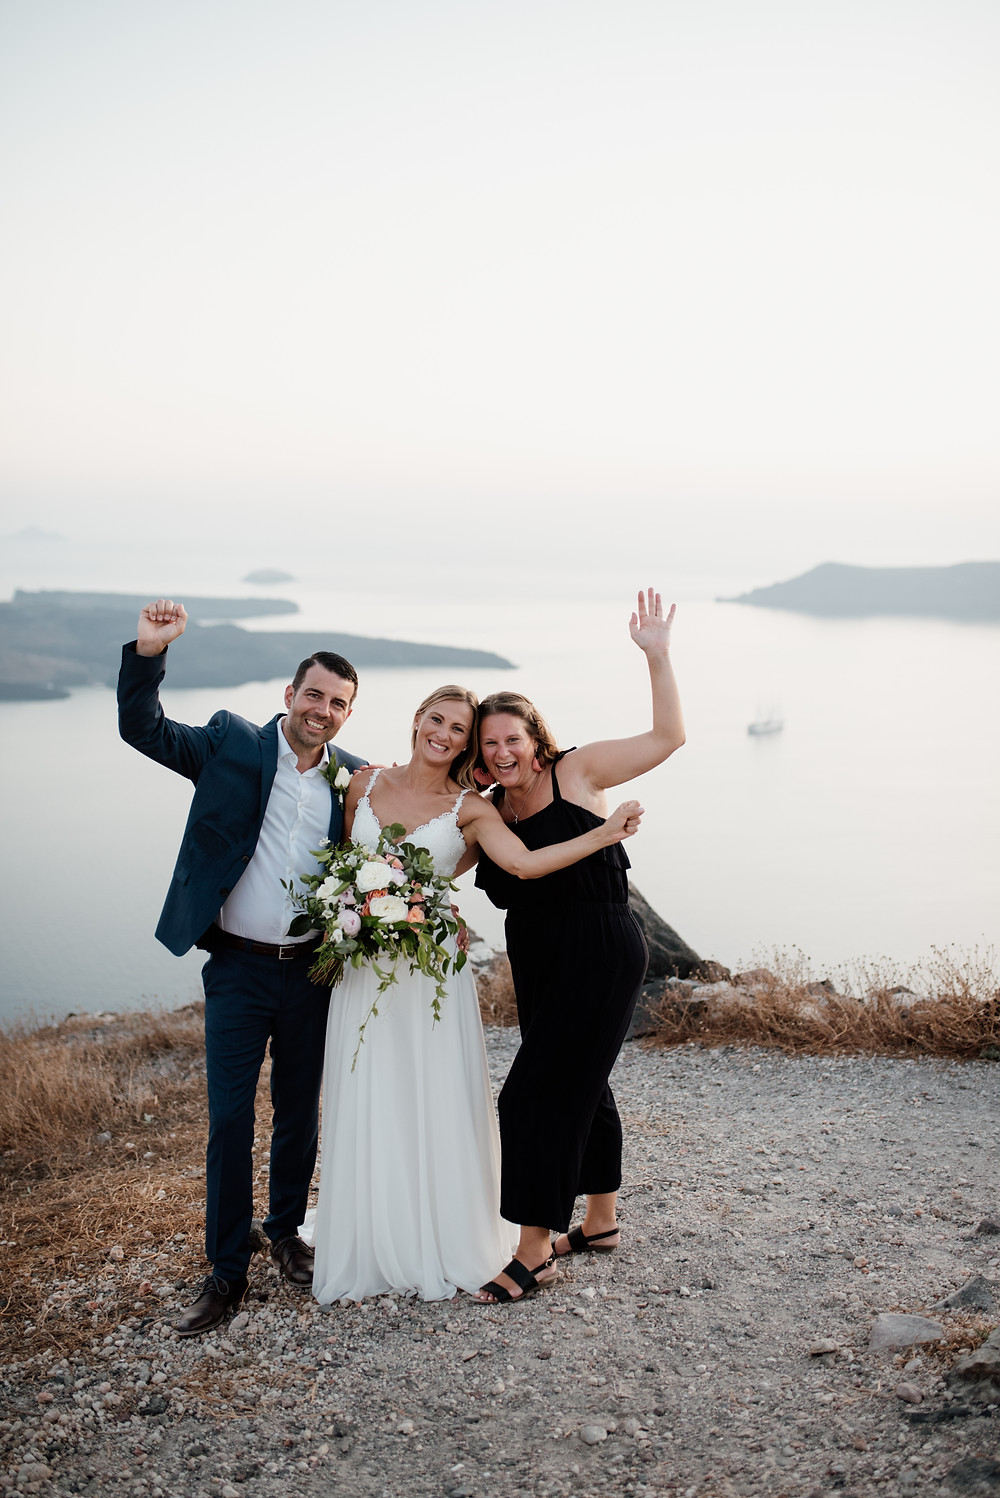 Destination Wedding Planner with Bridal Couple